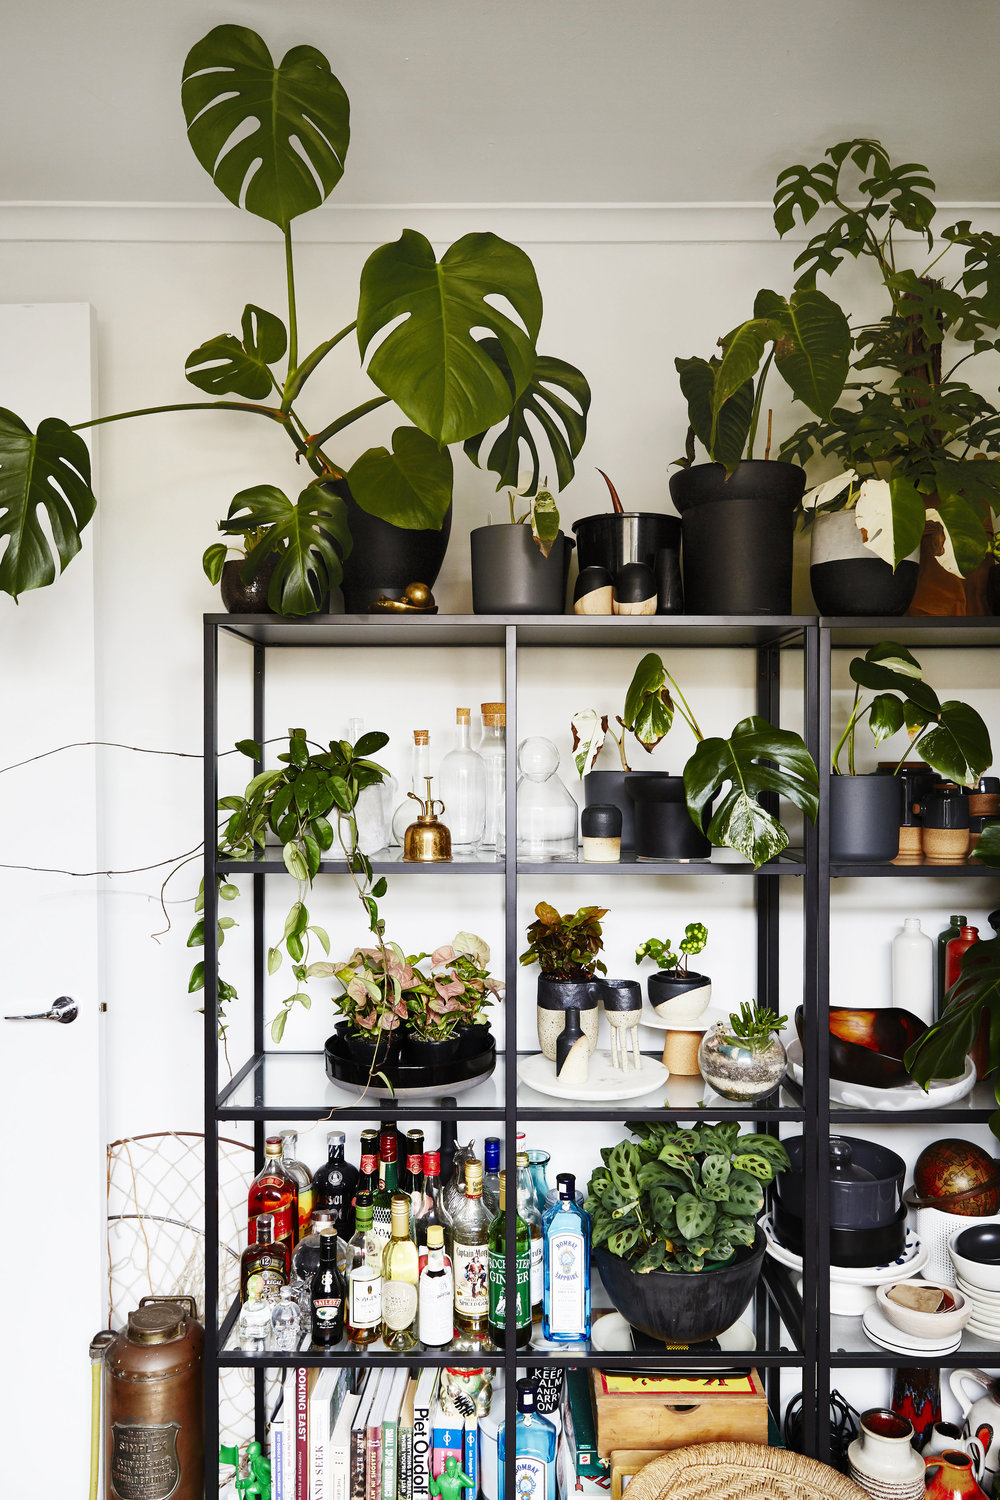 A snapshot from Jason and Nathan's home where they have over 400 plants.